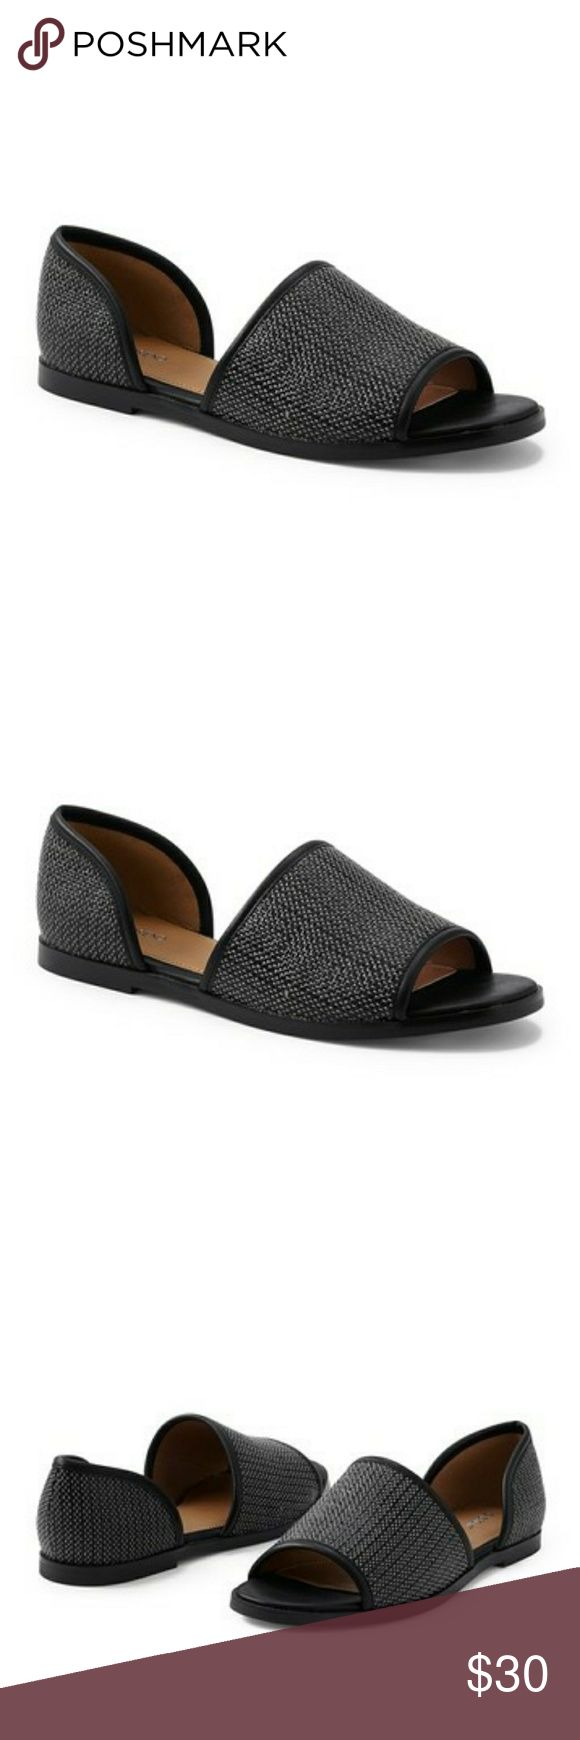 Land's End d'Orsay Open Toe Flat NIB  Sizing: True to size.  - Open toe - Woven detail - d'Orsay design - Slip-on - Imported  Materials - Polyester upper, rubber sole Lands' End Shoes Flats & Loafers